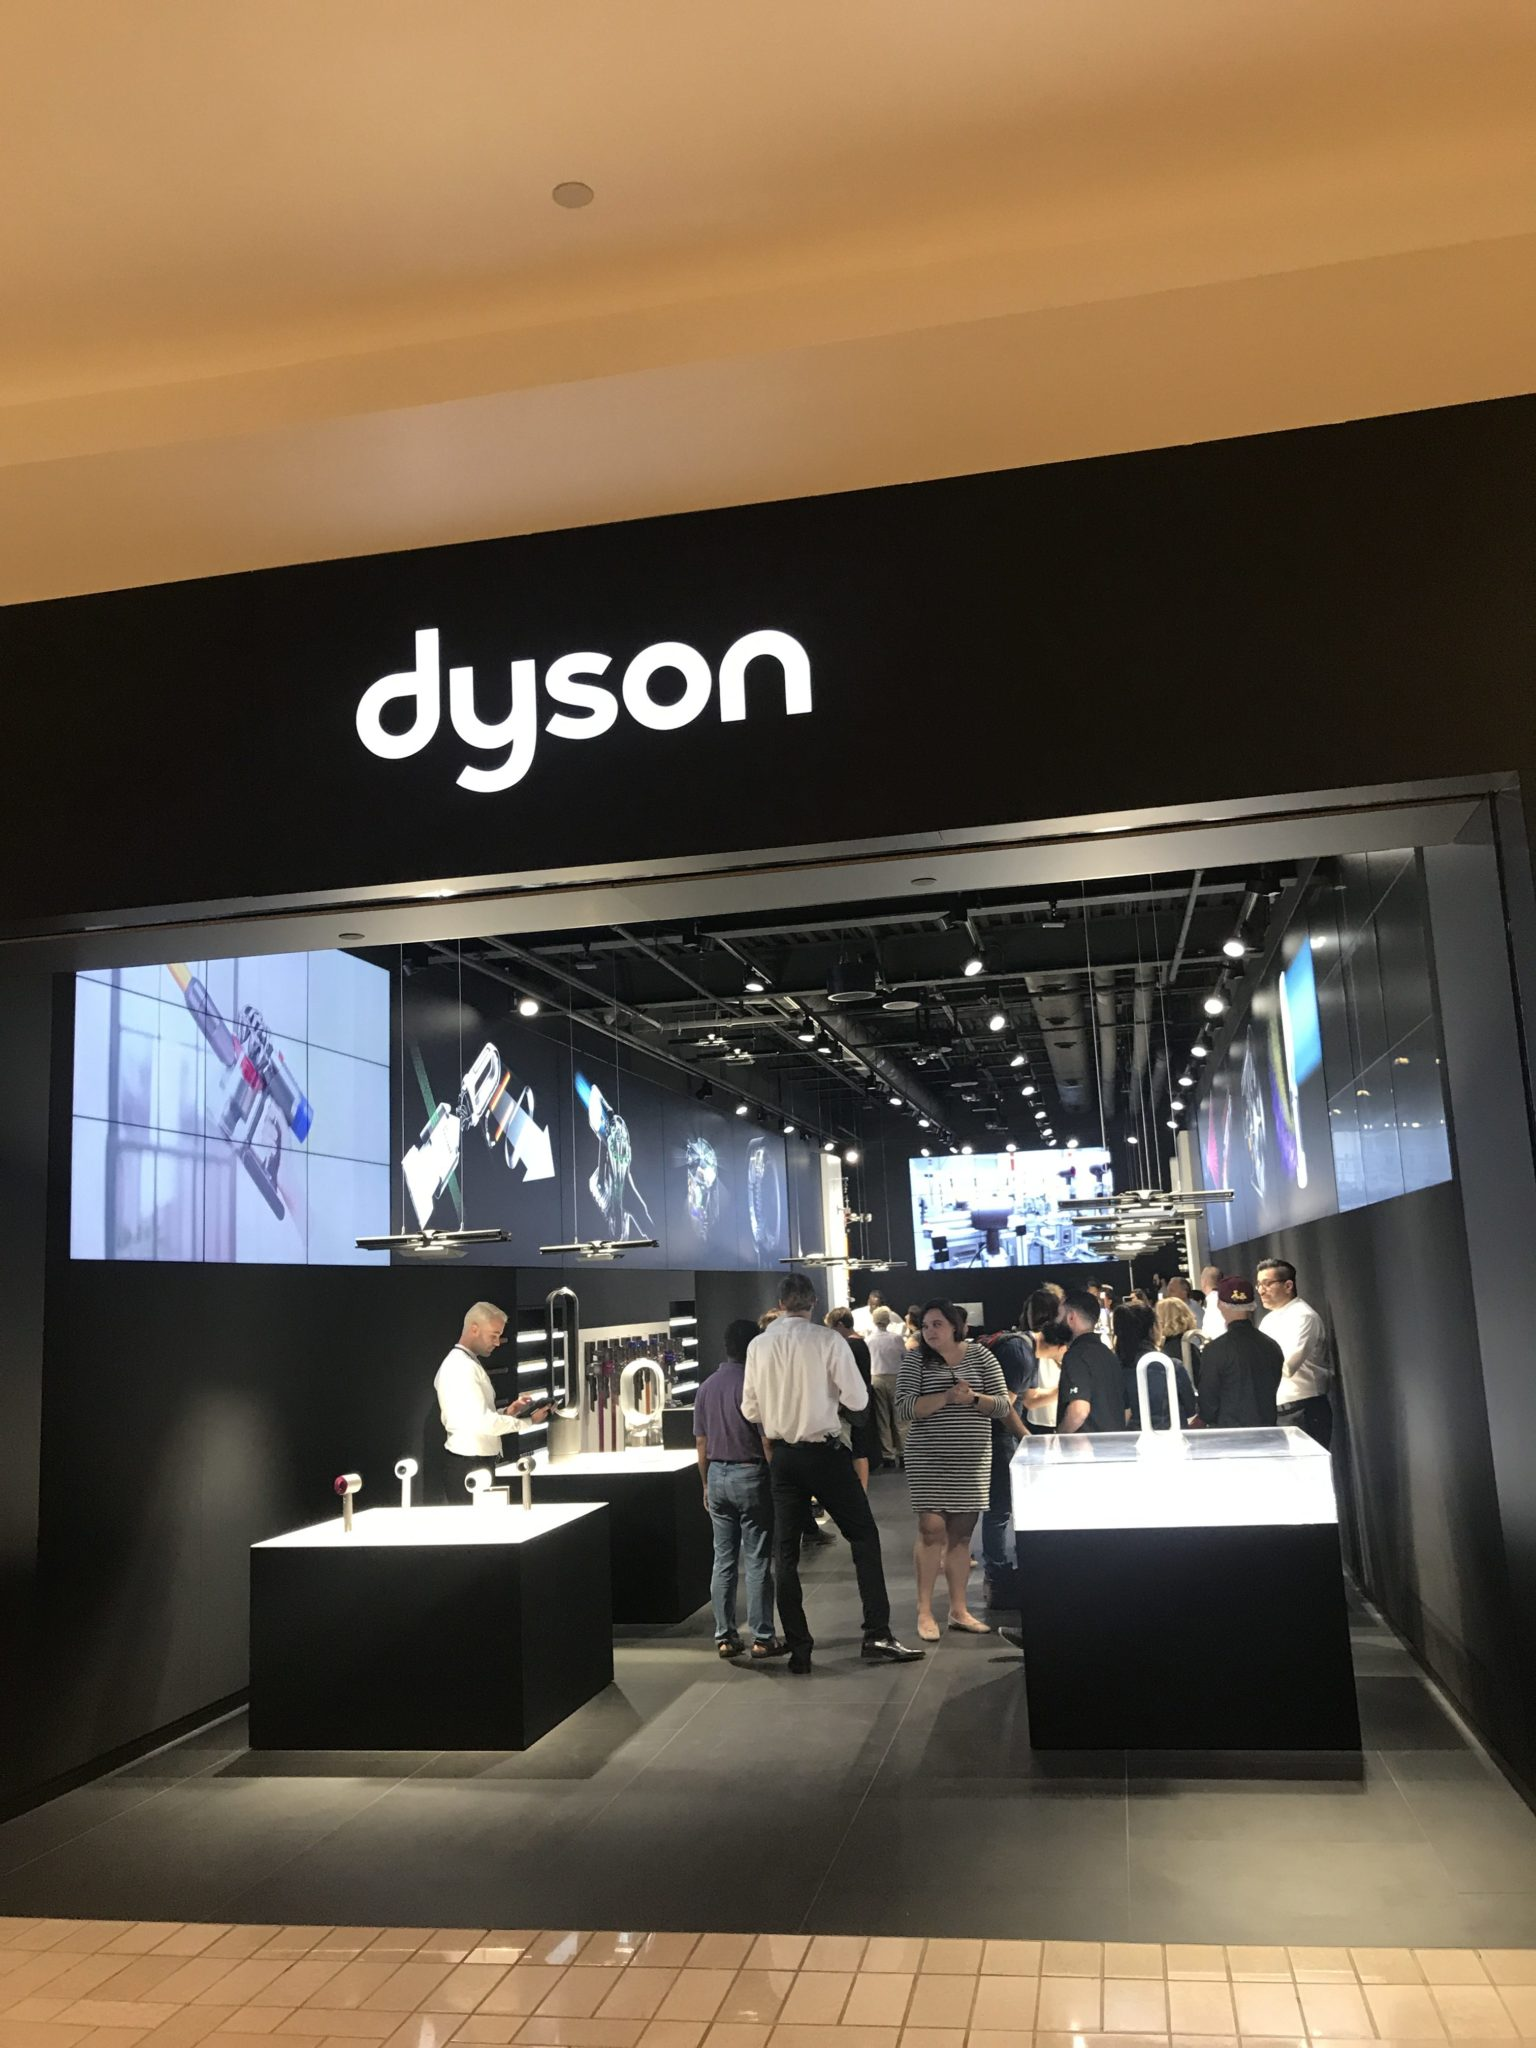 I Have Been A Dyson Fan Pun Intended Since First Used Their Am06 10 Inch Desk Remember Seeing It At Carl S Apartment When We Started